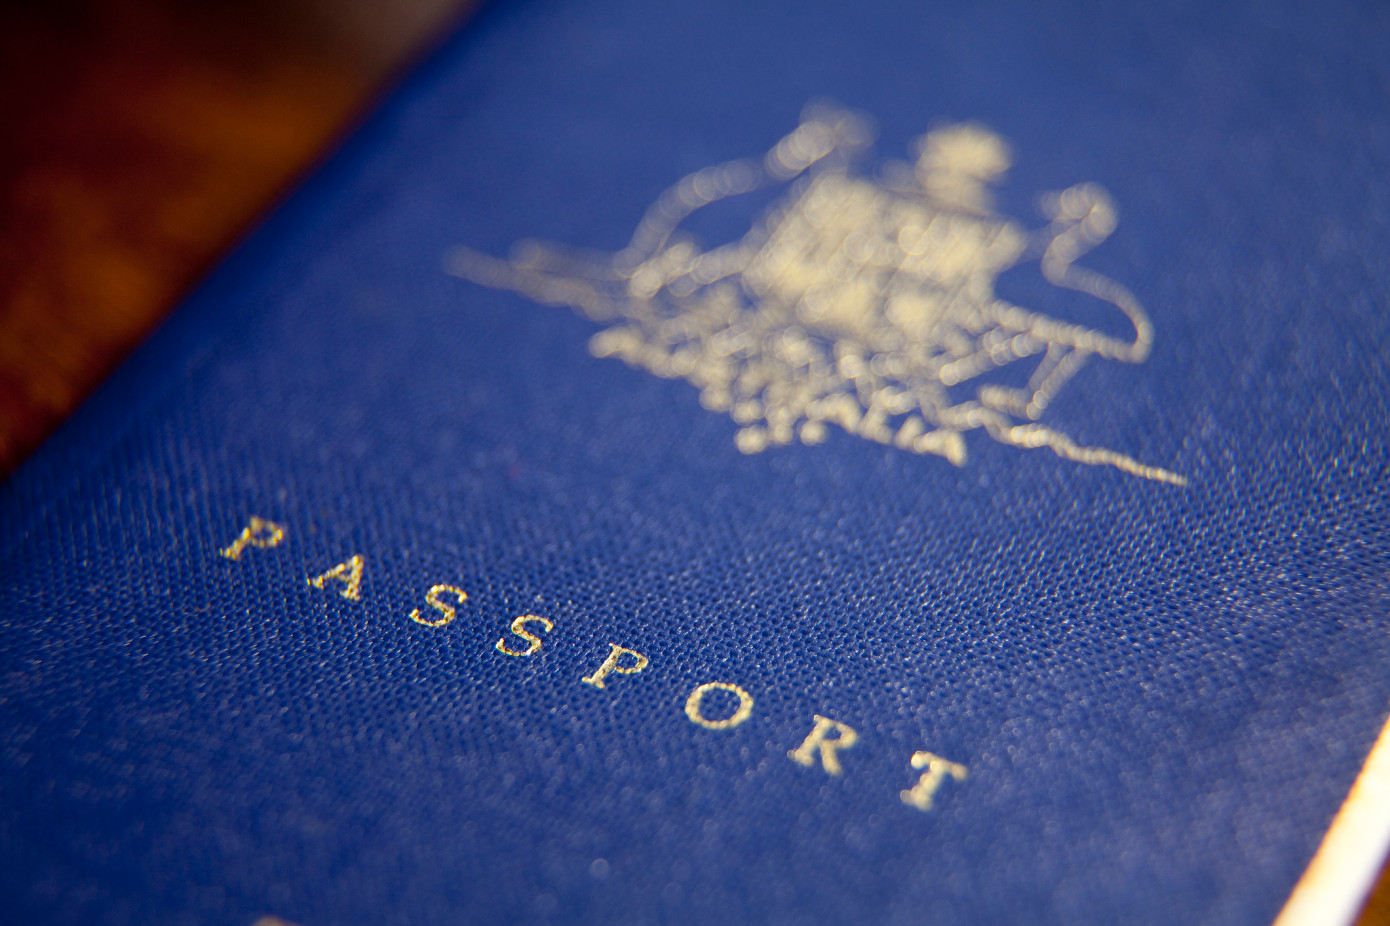 In Australia the passport will be replaced by a facial recognition system